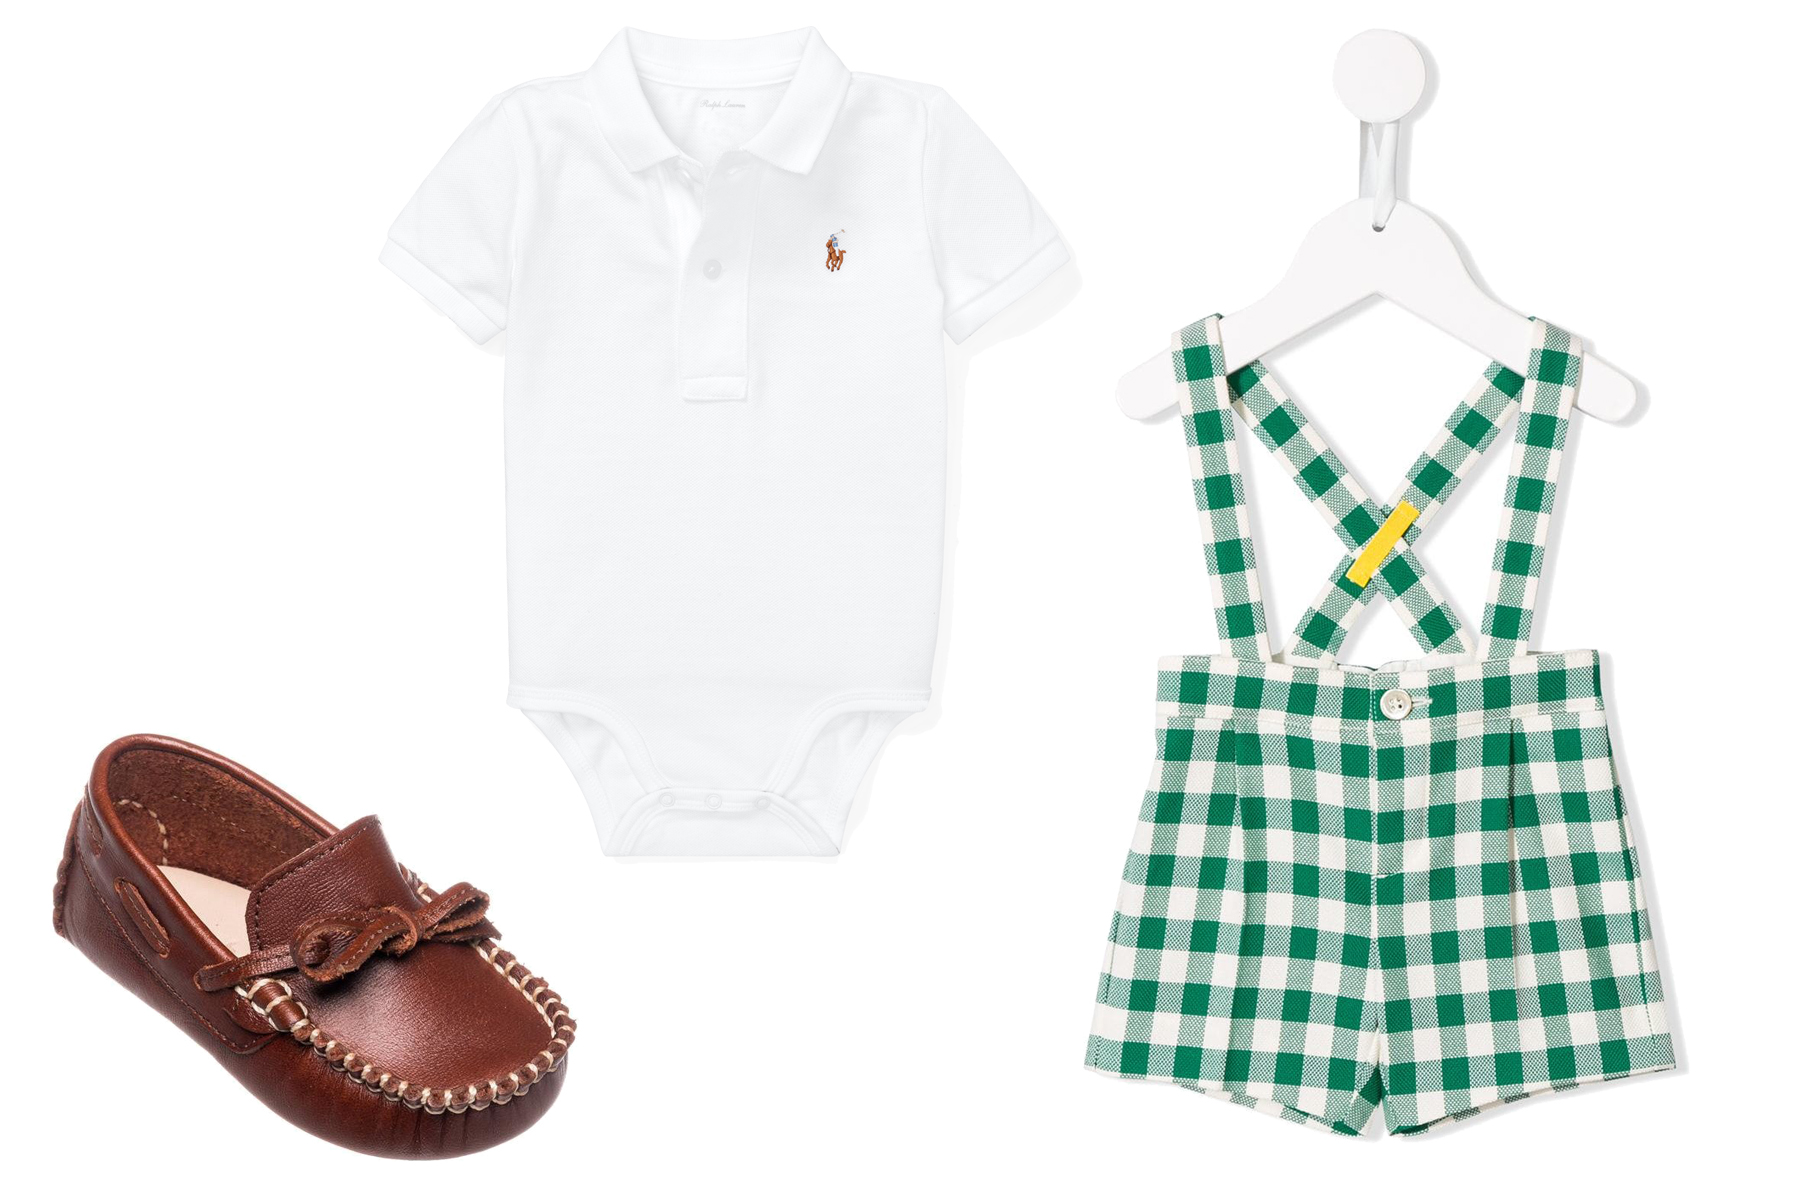 kids-easter-look-1 6 Adorable Easter Looks for Kids